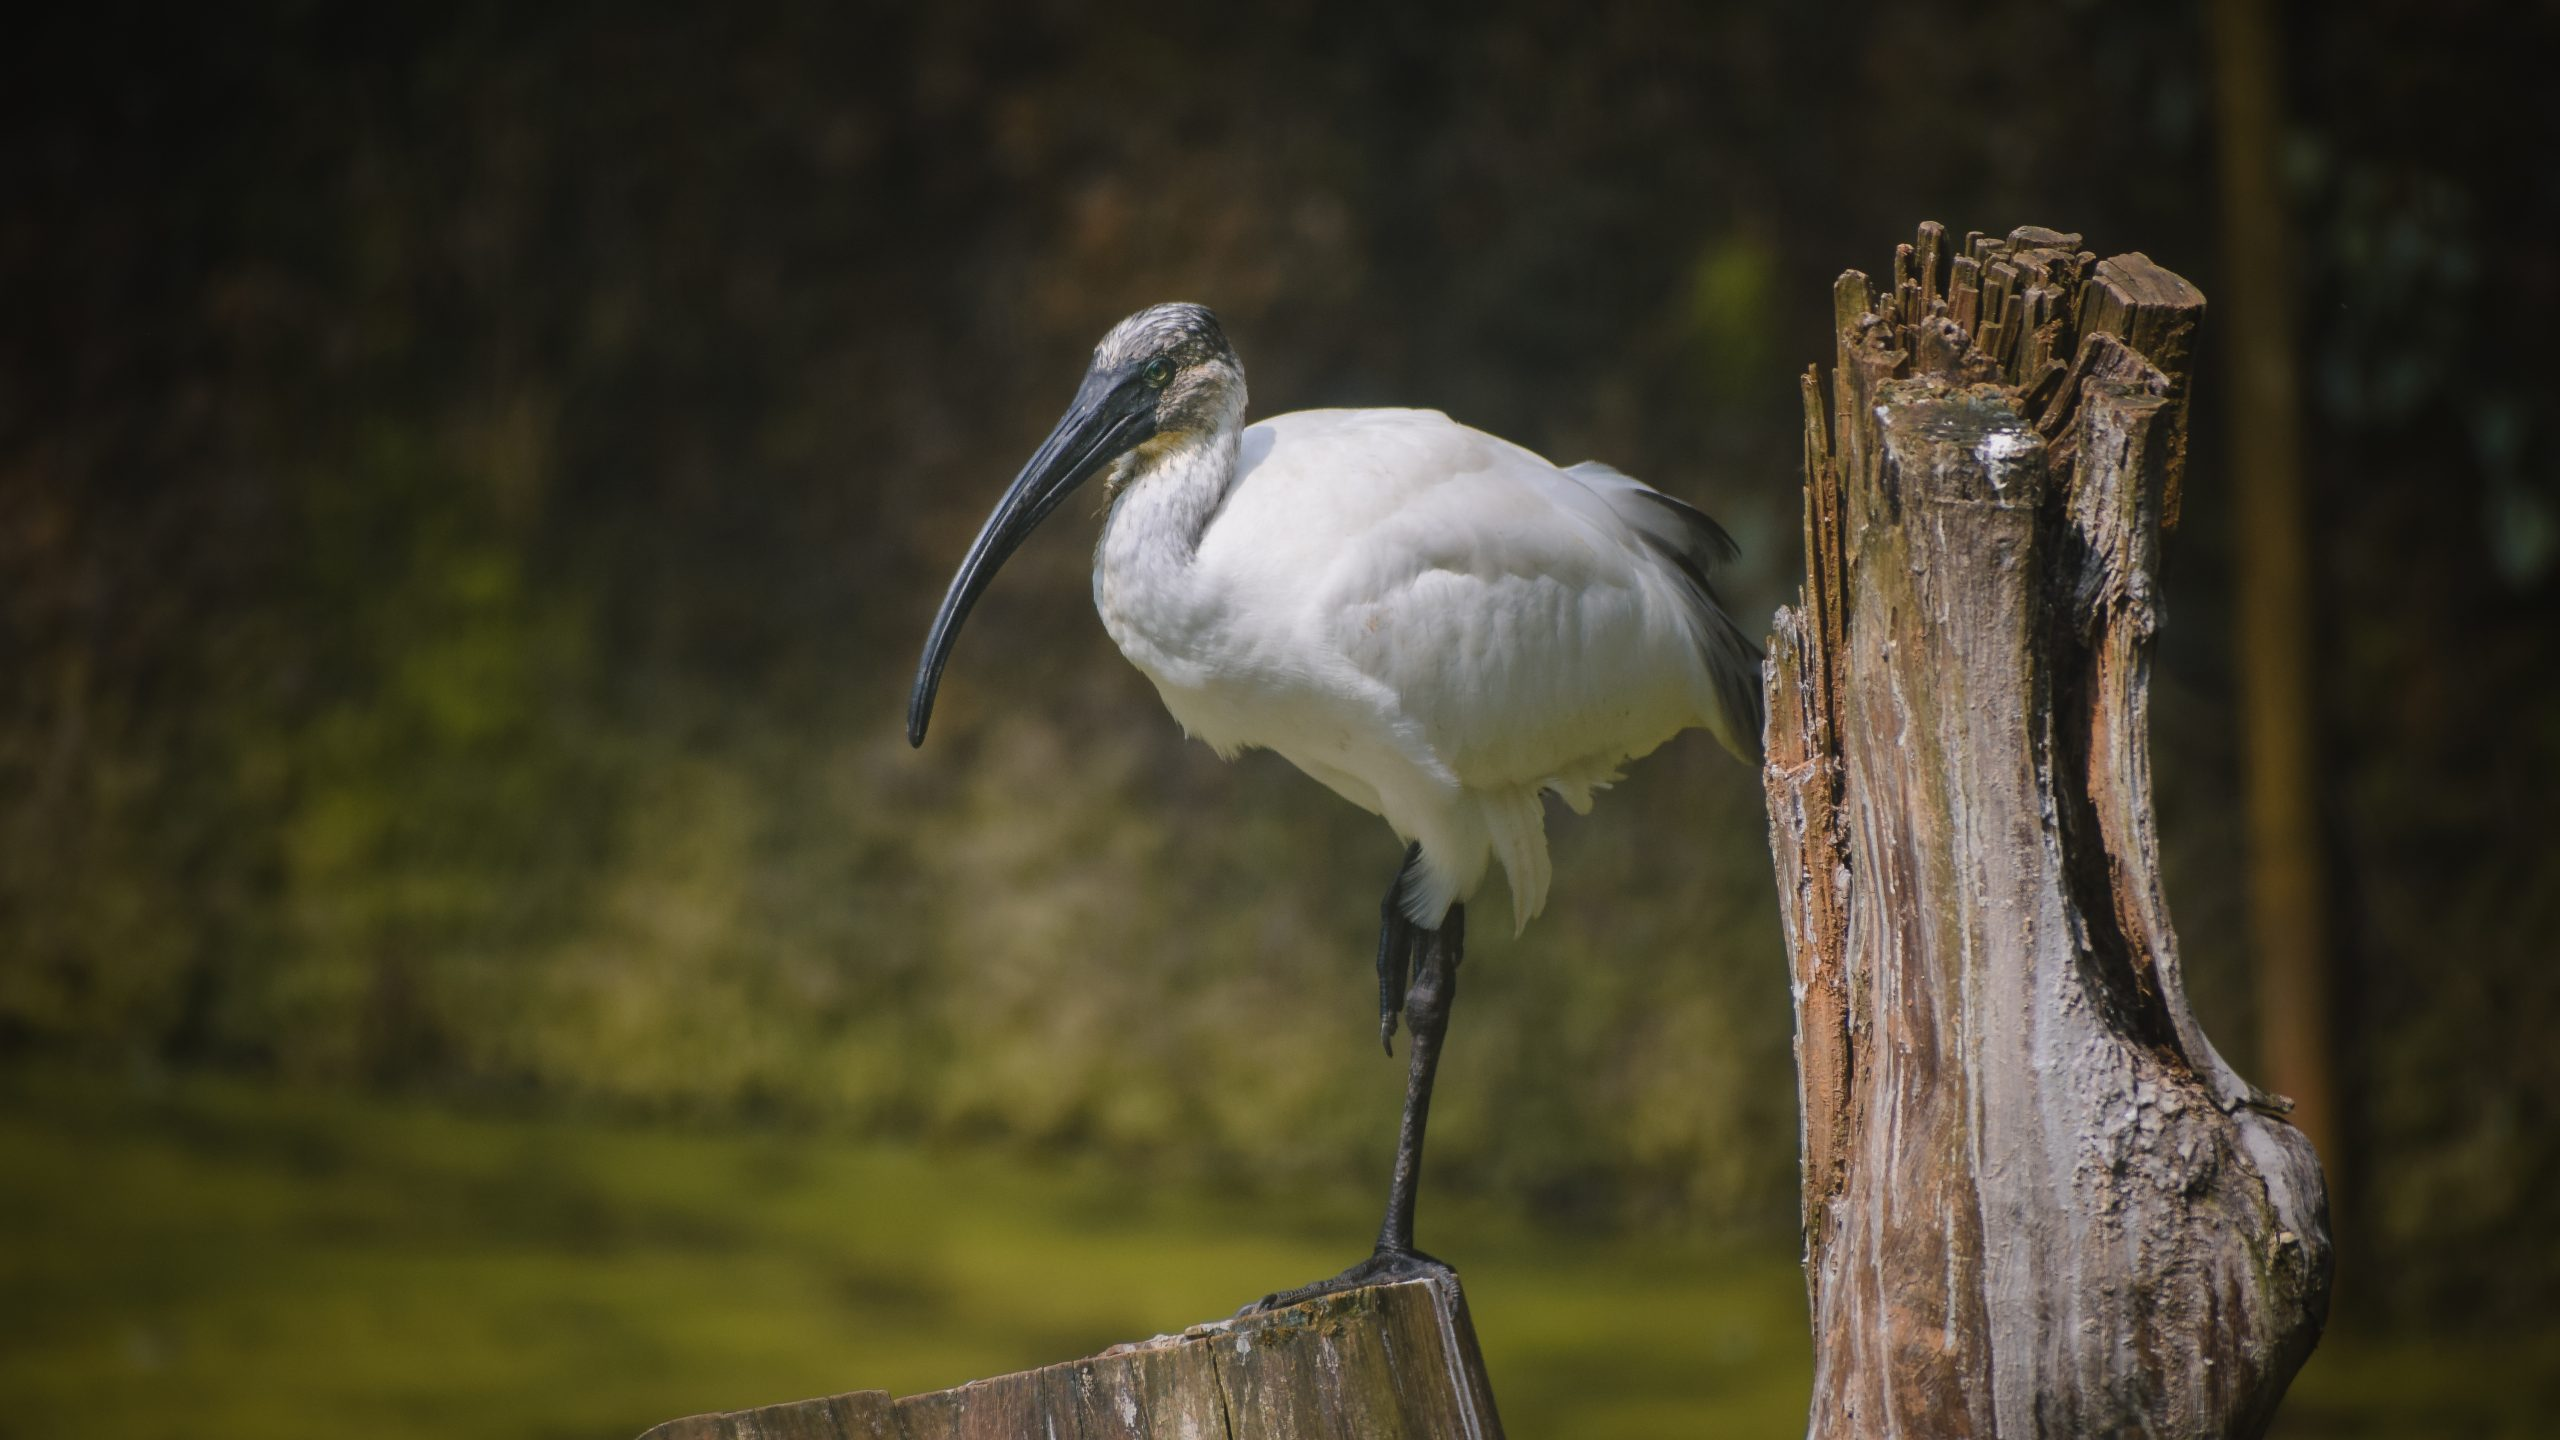 Ibis sitting on wood